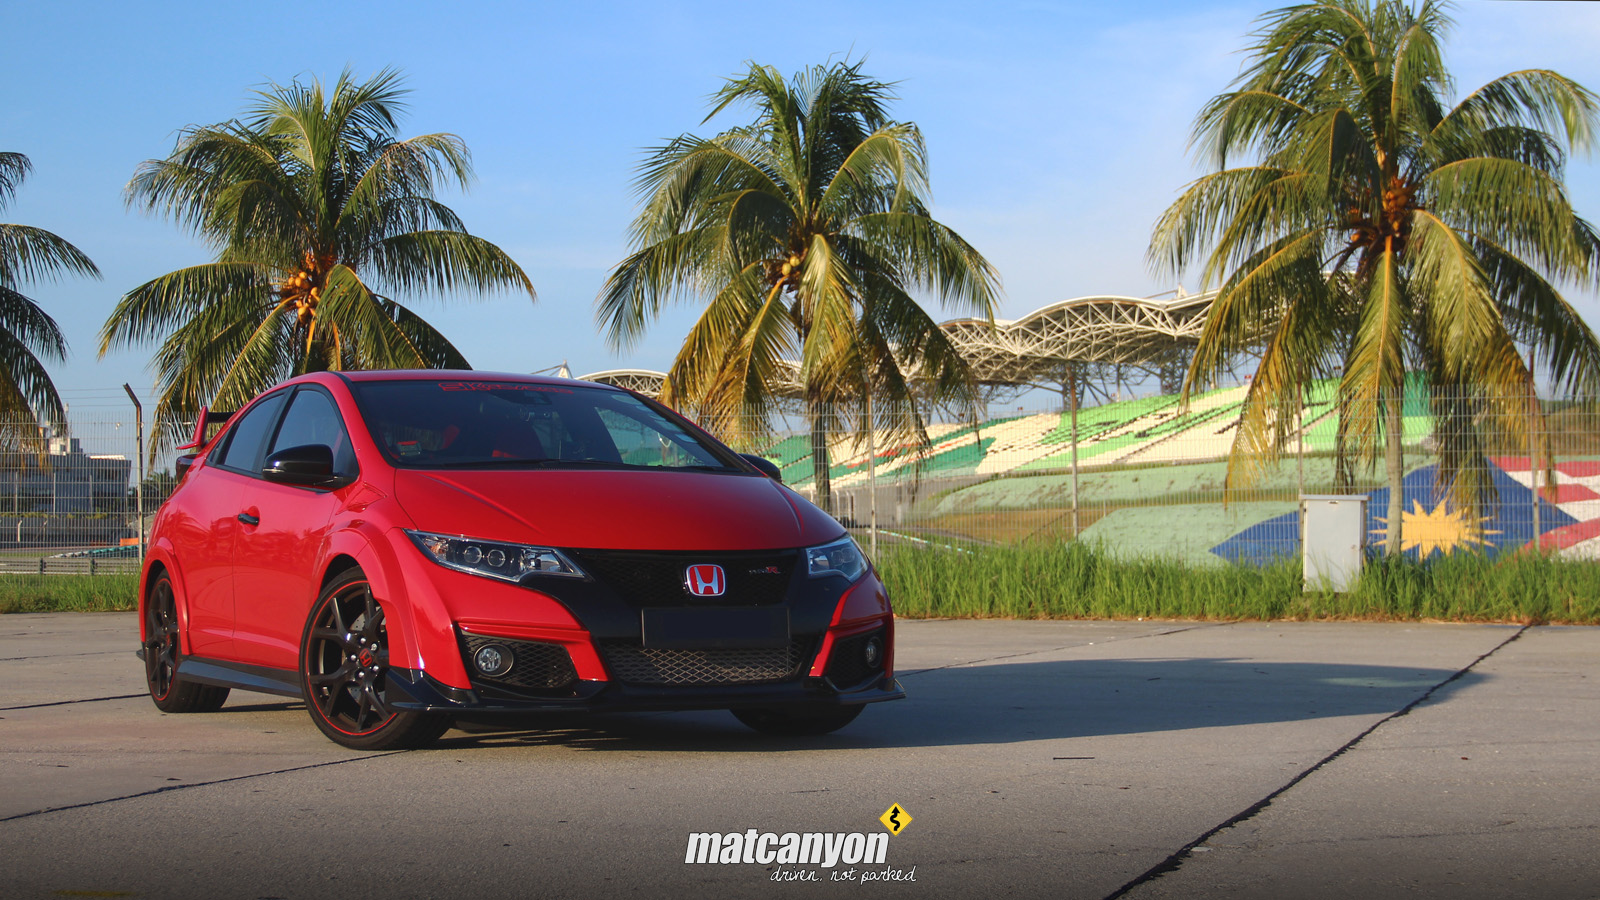 Sometime At The Dawn Of 90s Honda Started To Design And Manufacture Top Range Trims Selected Models Their Cars Under Name Type R